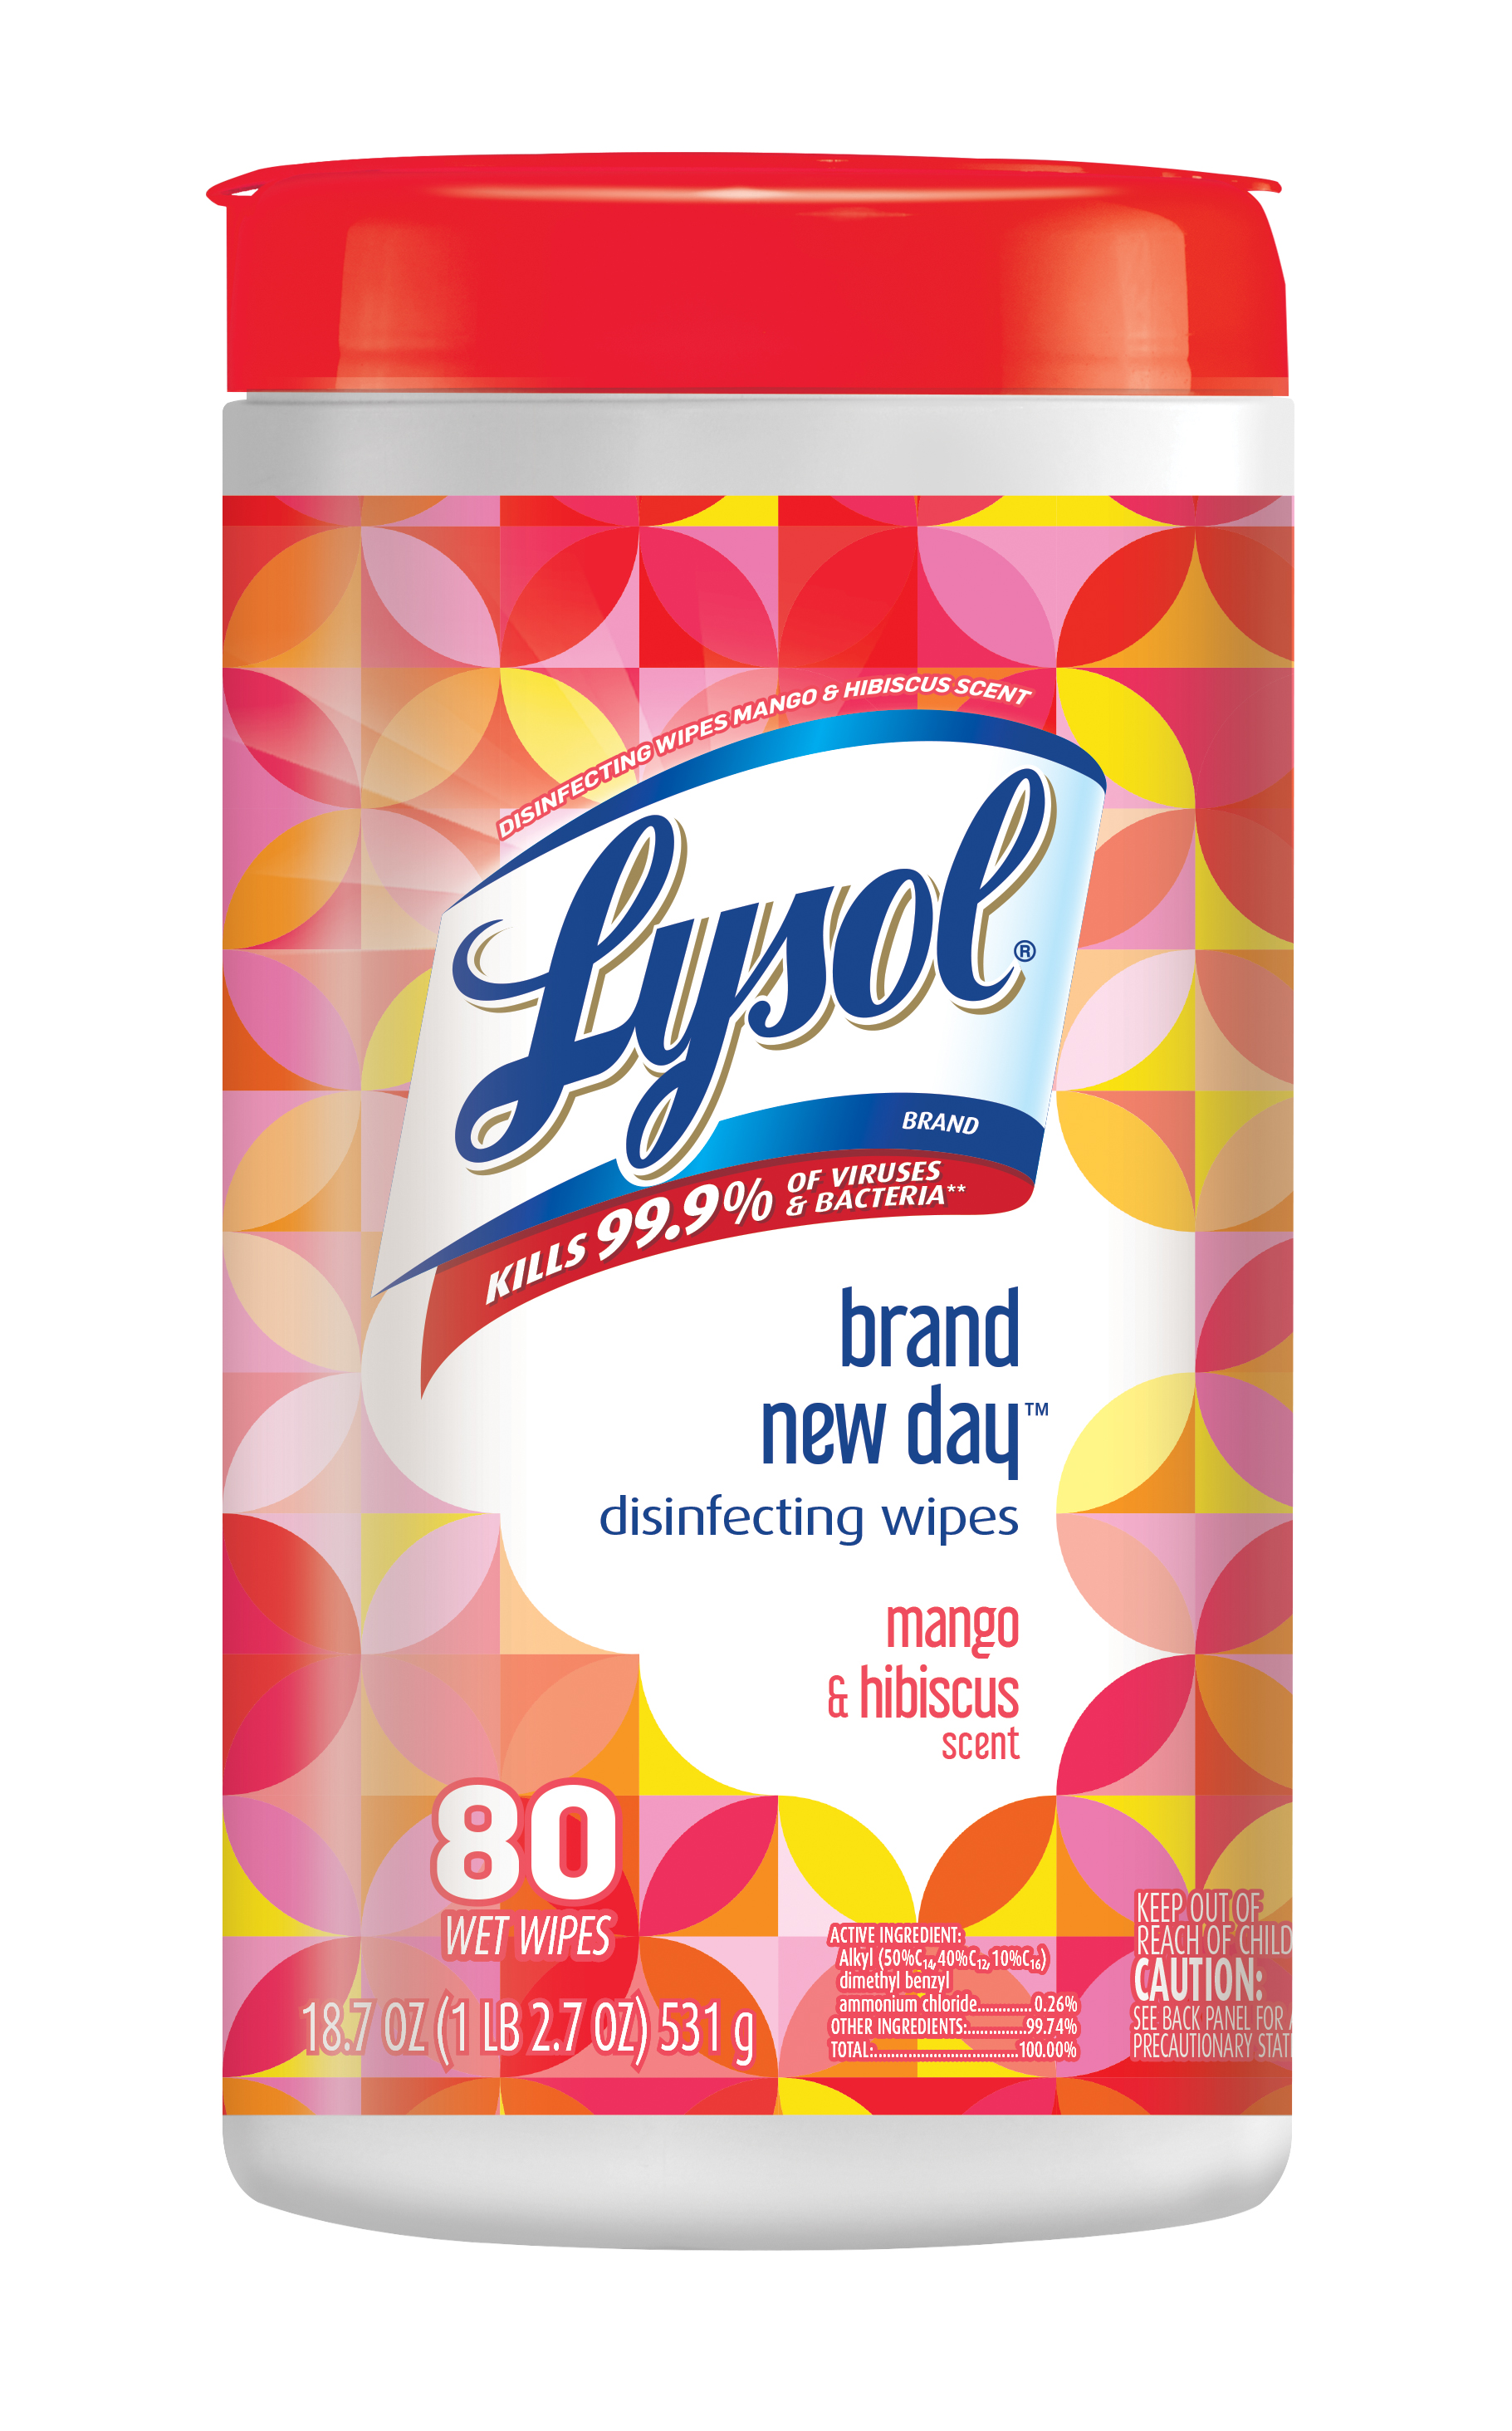 Lysol Disinfecting Wipes, Mango & Hibiscus, 80ct, Brand New Day